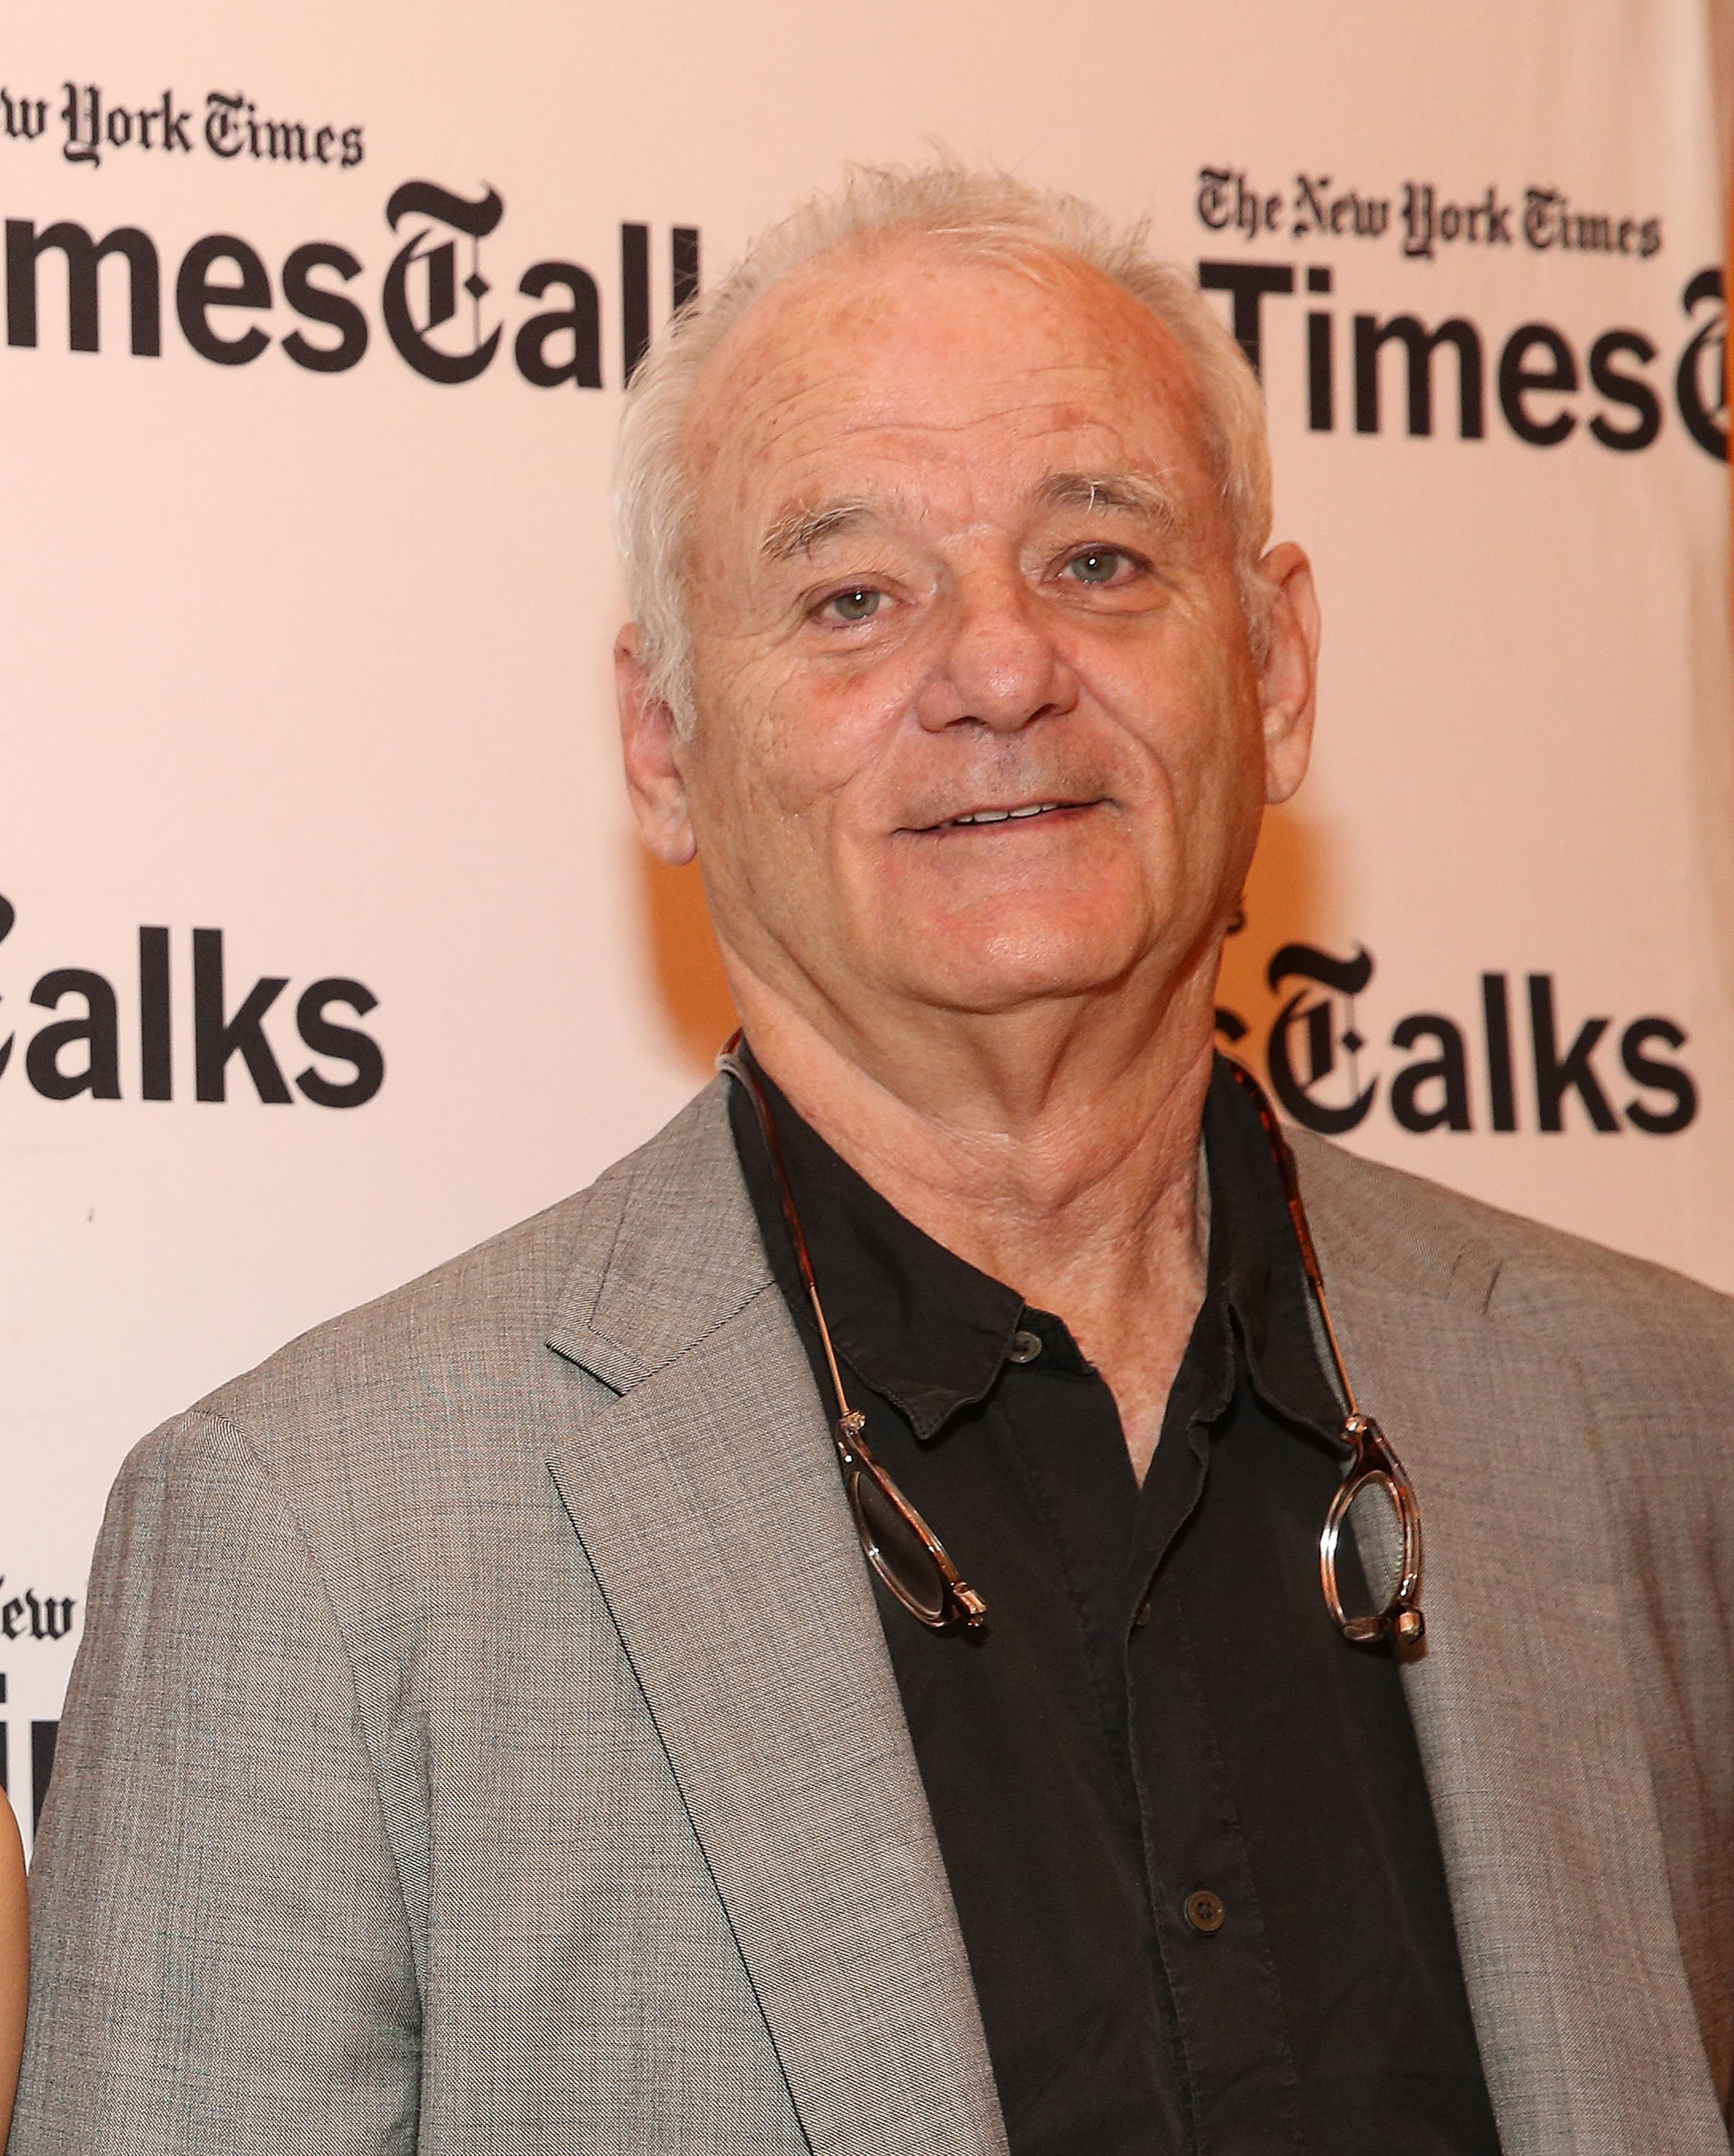 Bill Murray at a speaking engagement in New York in June 2017. | Photo: Getty Images